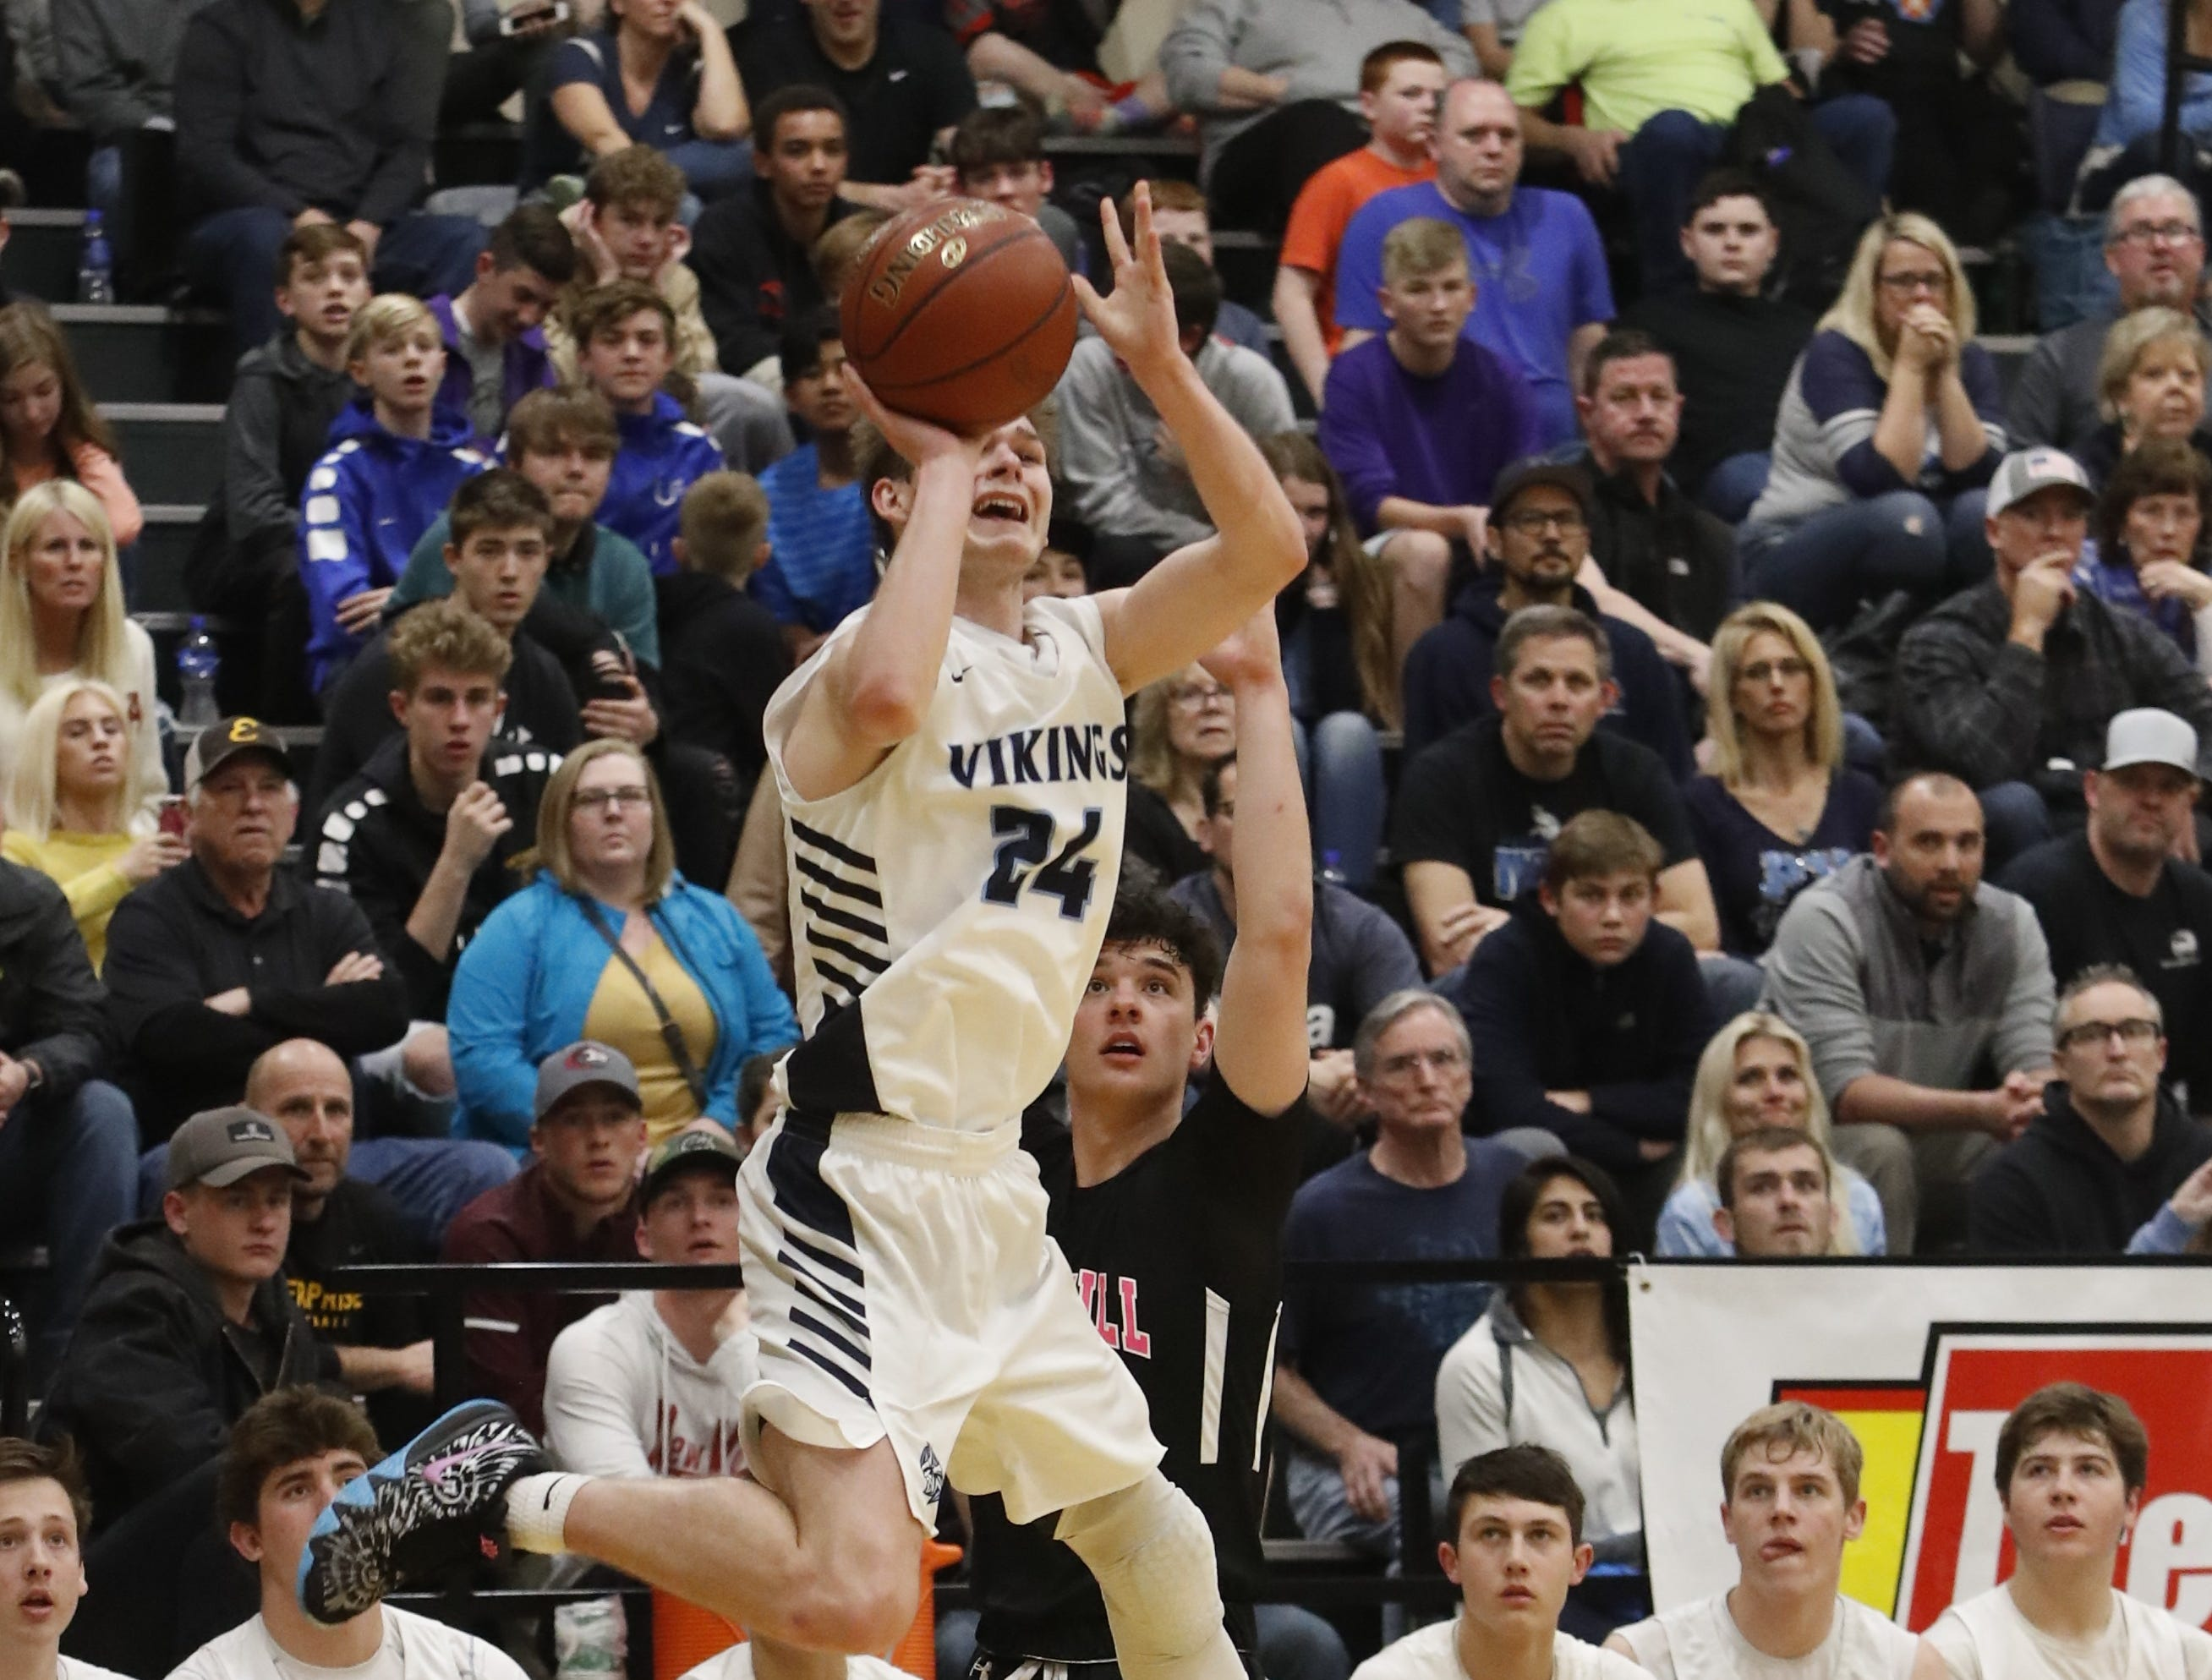 Pleasant Valley beat Foothill, 43-41, in the Division III Northern Section championship at Shasta College on Saturday, Feb. 23.